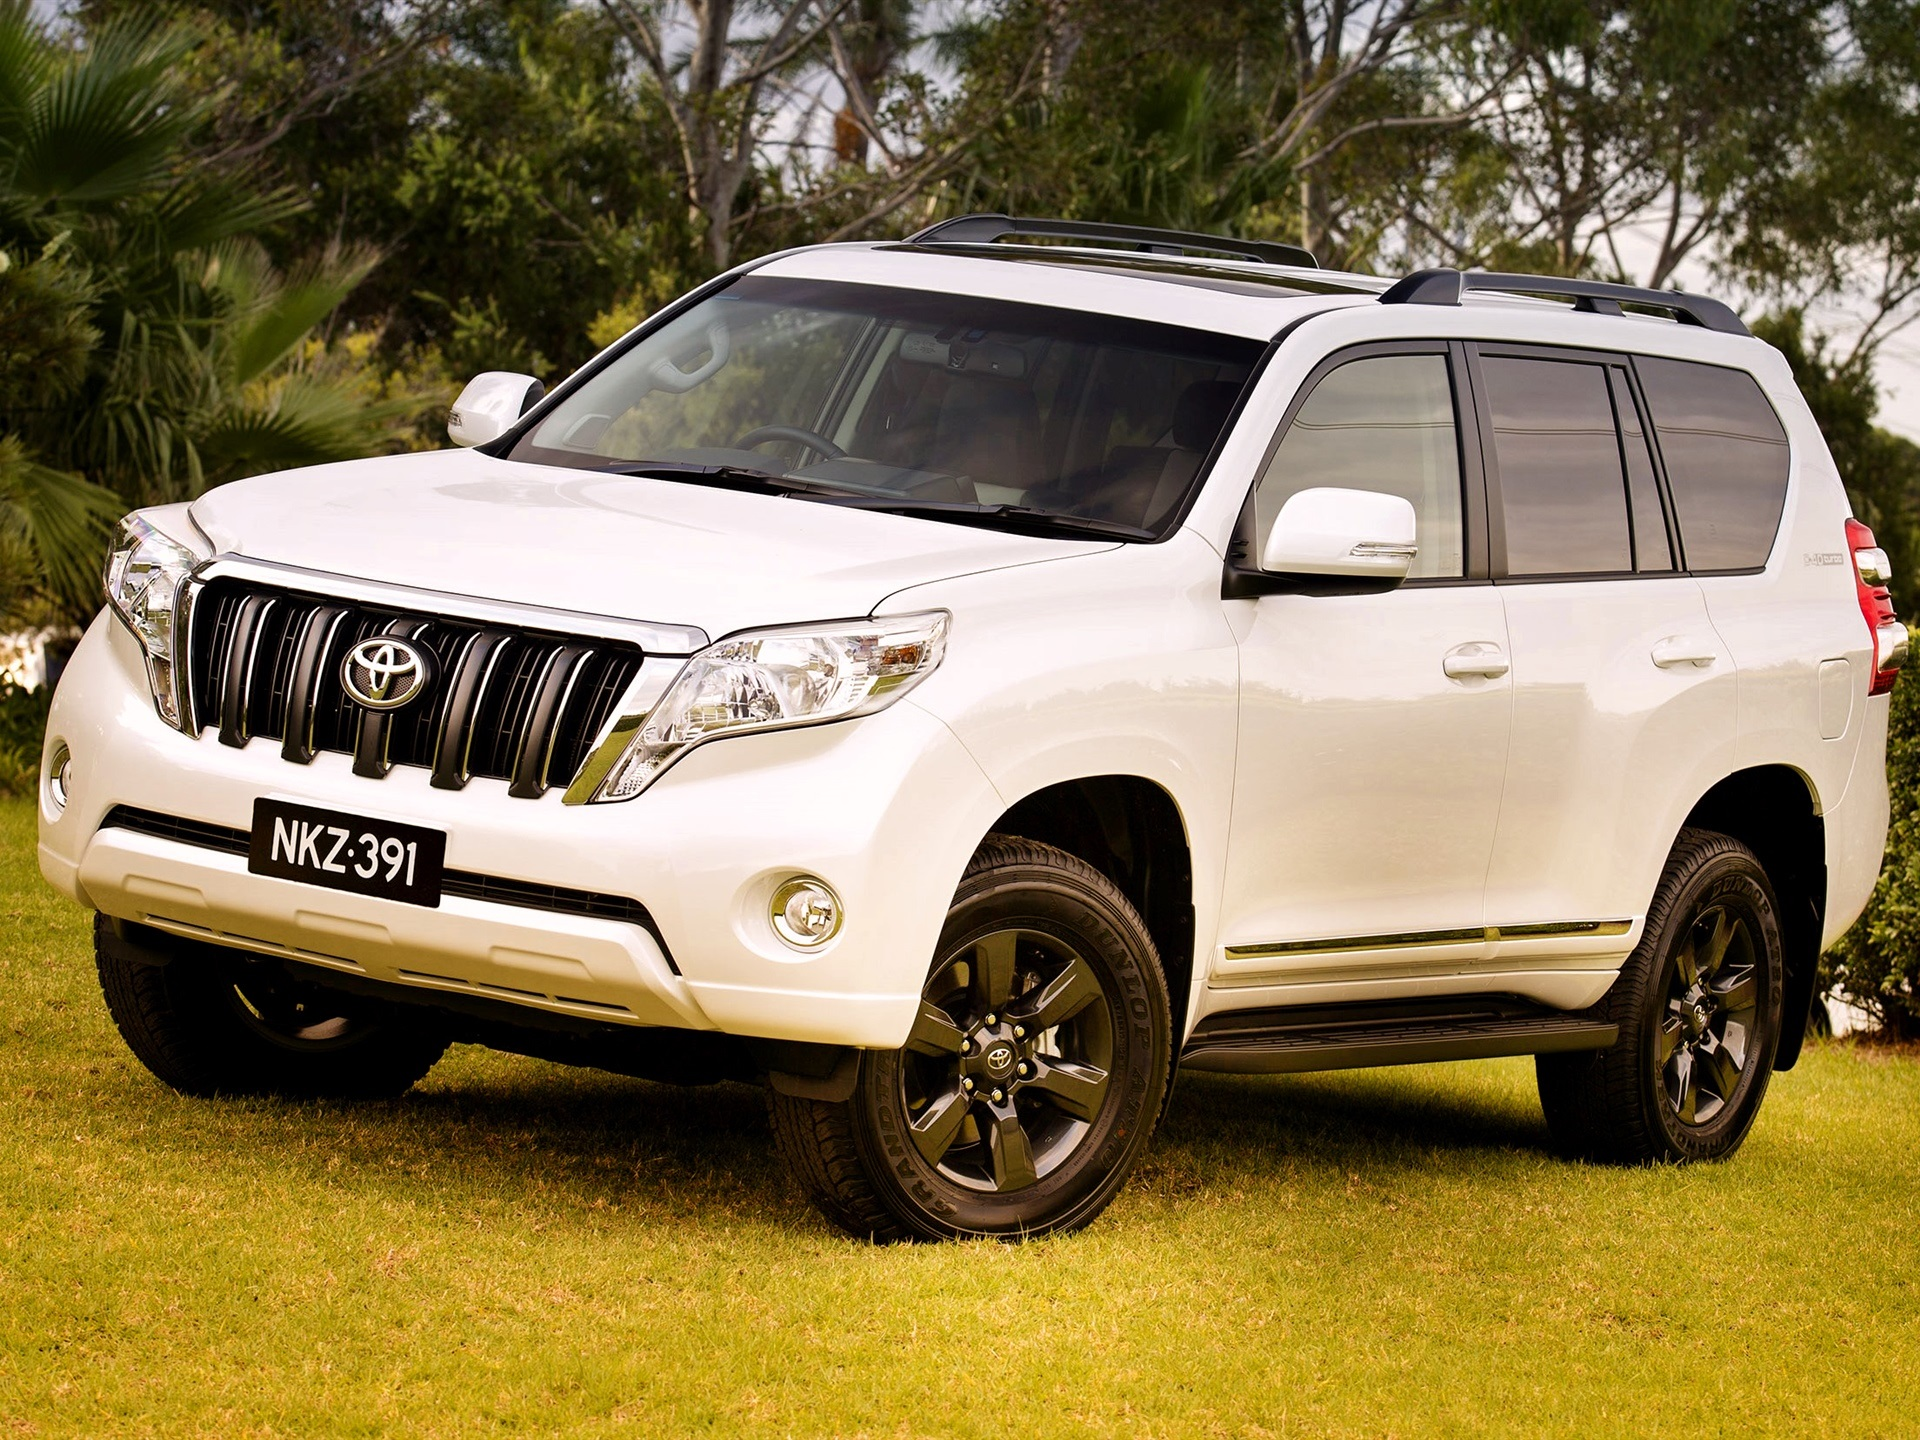 wallpaper 2014 toyota land cruiser prado suv car 2560x1440. Black Bedroom Furniture Sets. Home Design Ideas